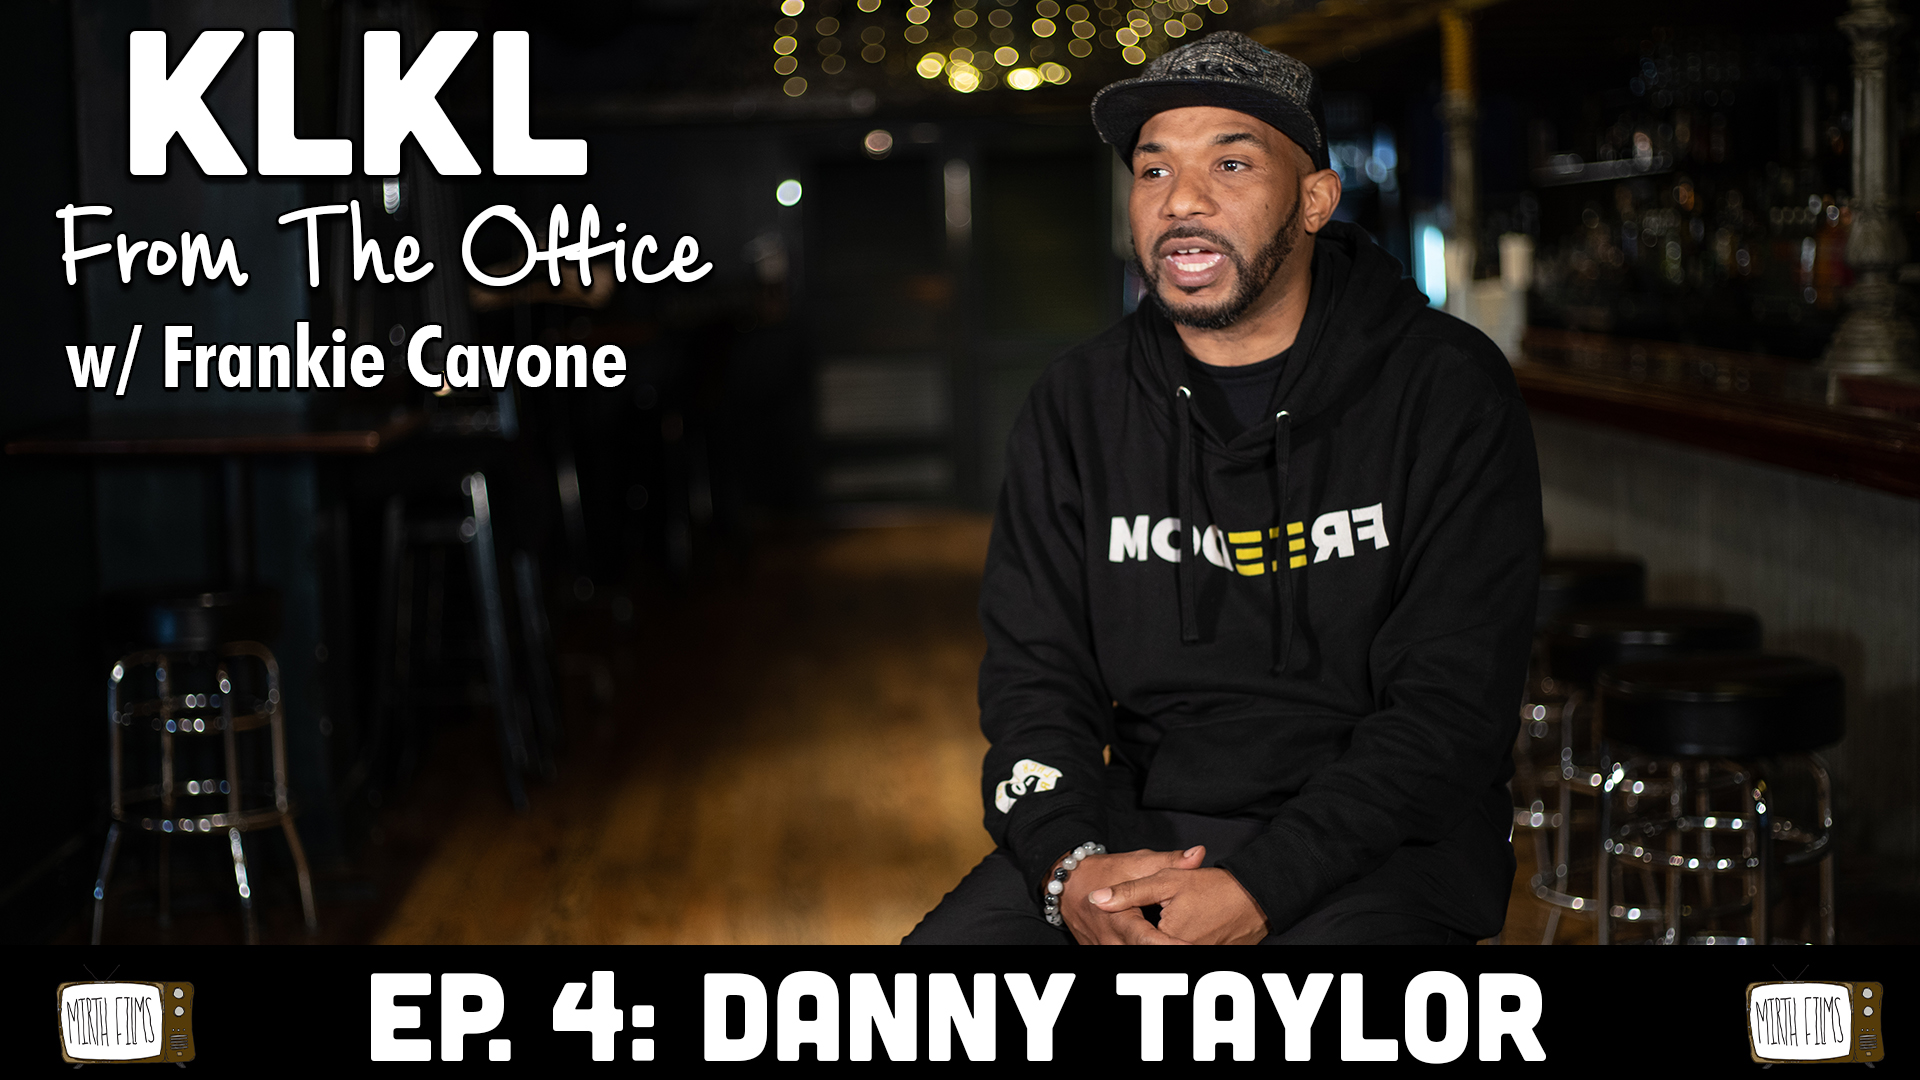 Danny Taylor | From The Office EP. 4 with Frankie Cavone